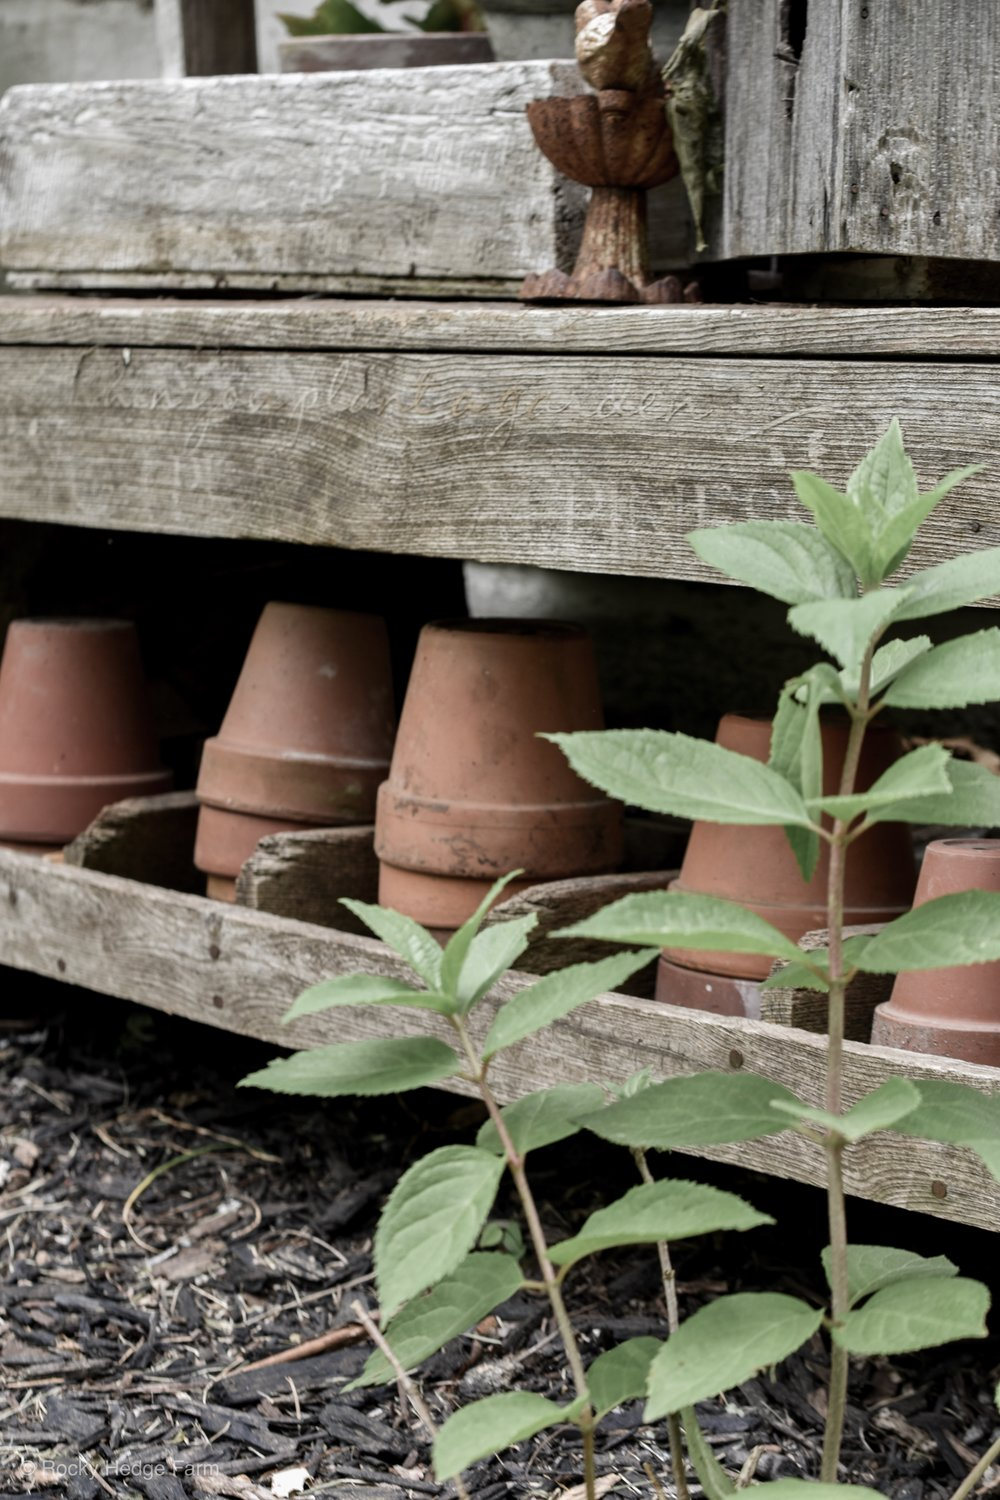 Rustic garden decor with old wooden bench and clay terra cotta pots | Rocky Hedge Farm